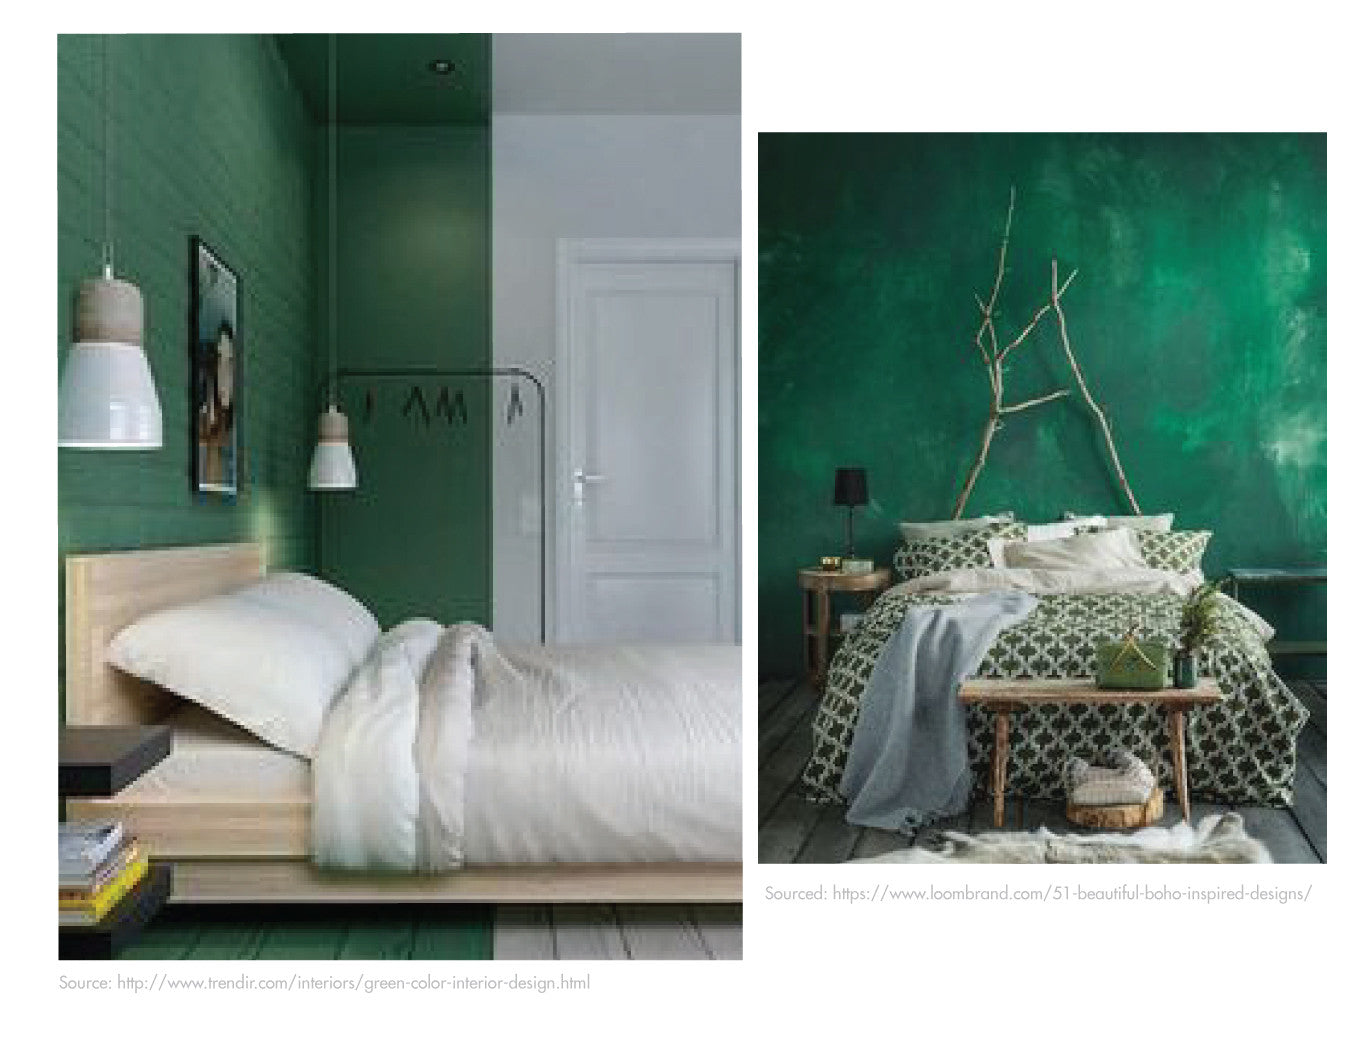 Green Bedroom/renew/beinspired/blog/lulasclan